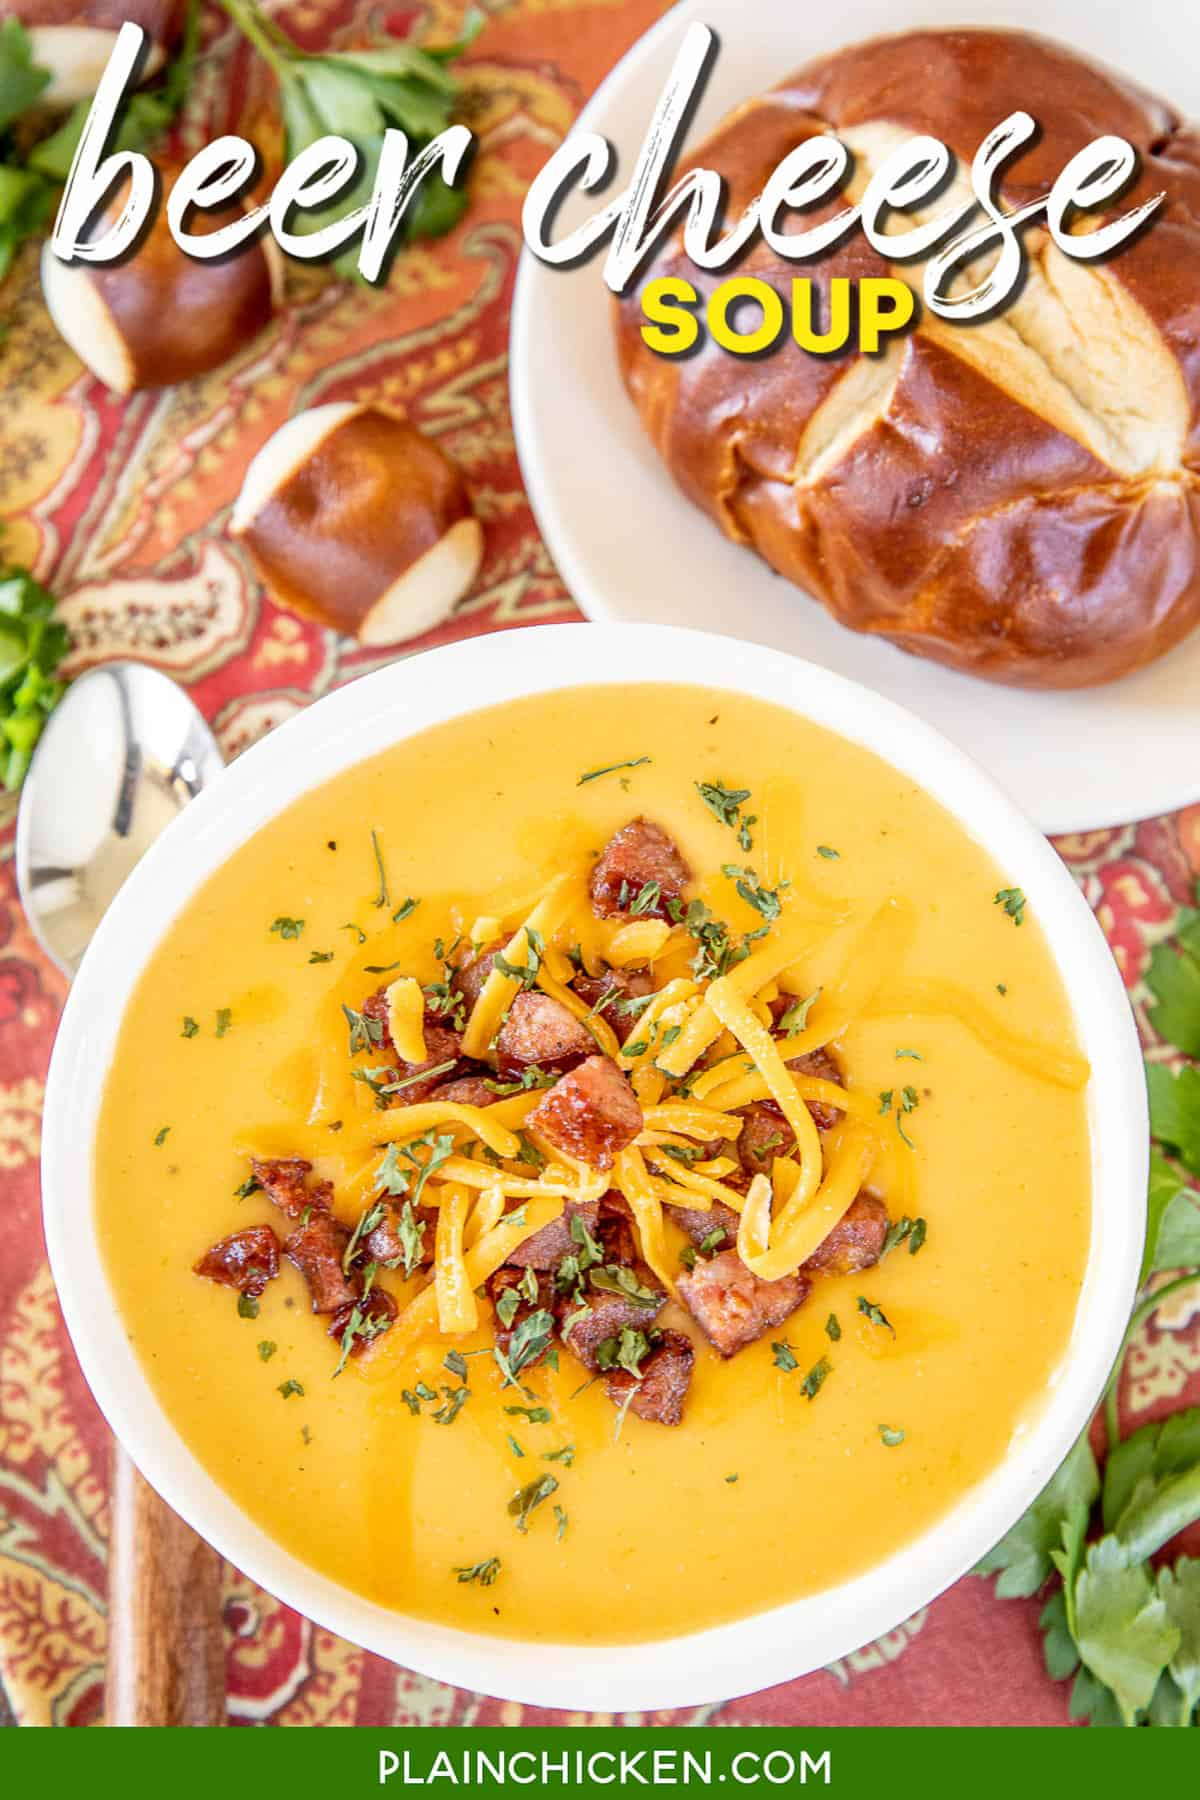 Beer Cheese Soup with Smoked Sausage